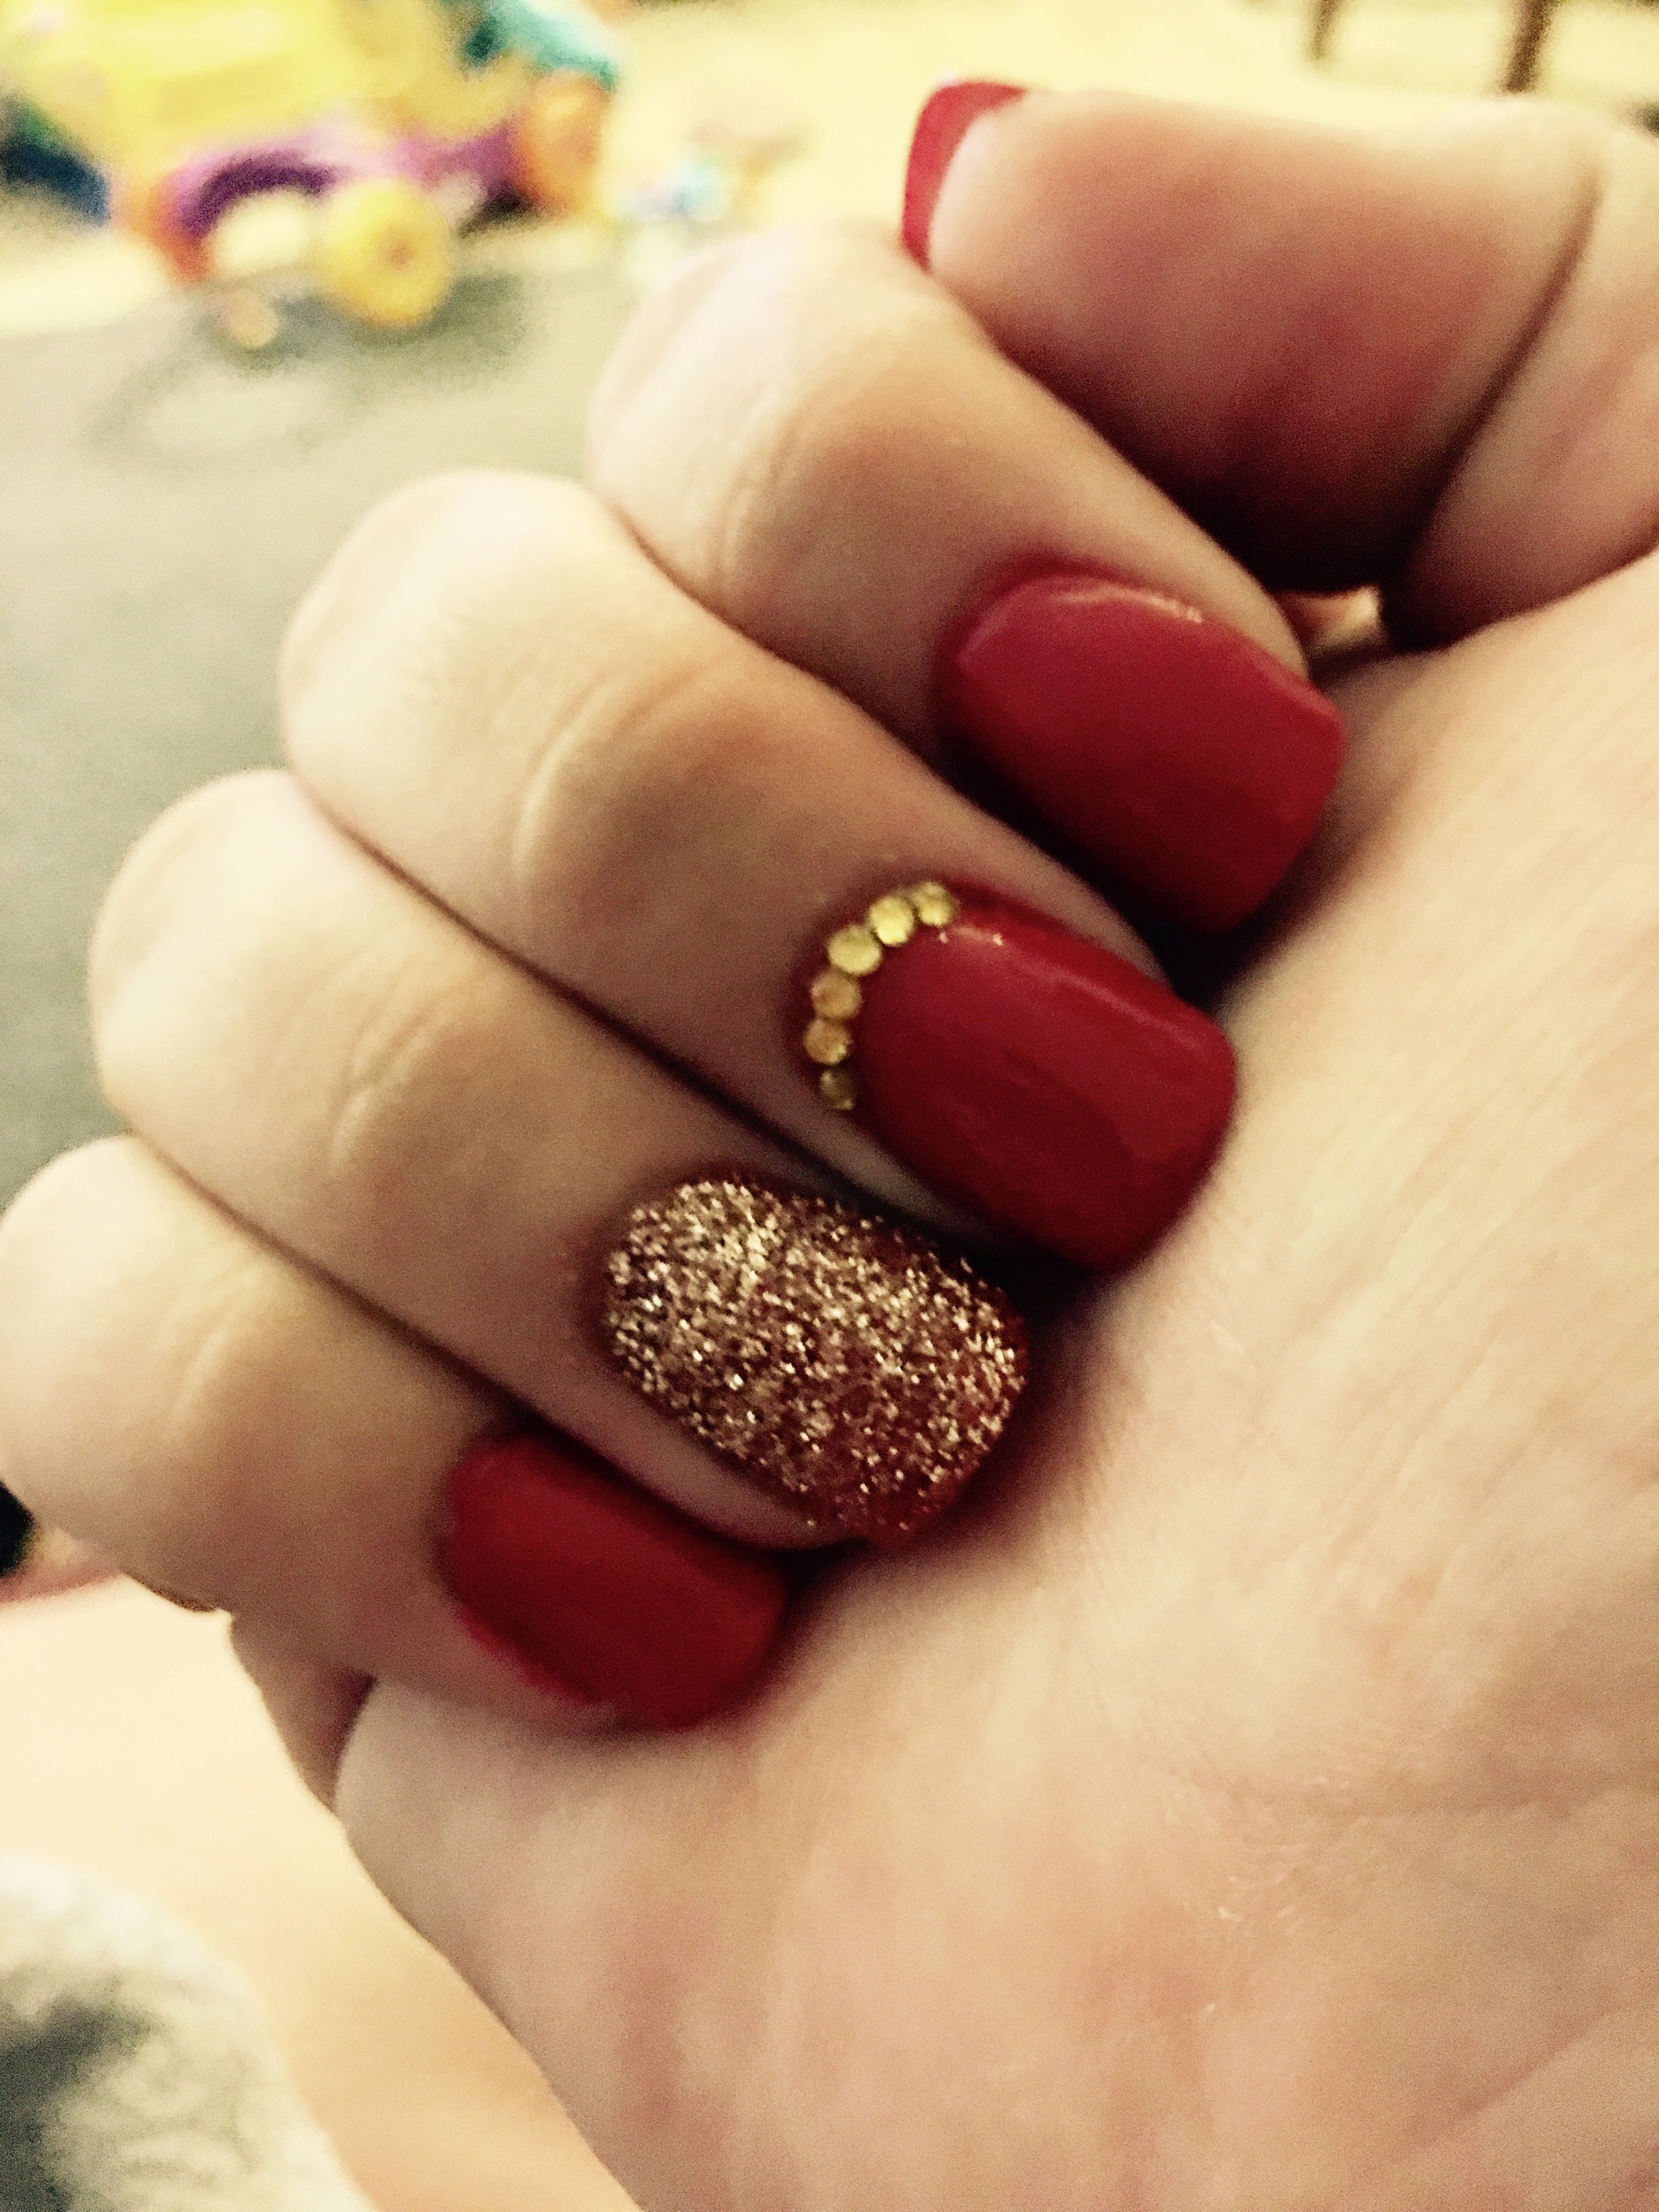 34 Red Glitter Nails ideas in 2021 | nails, nail designs